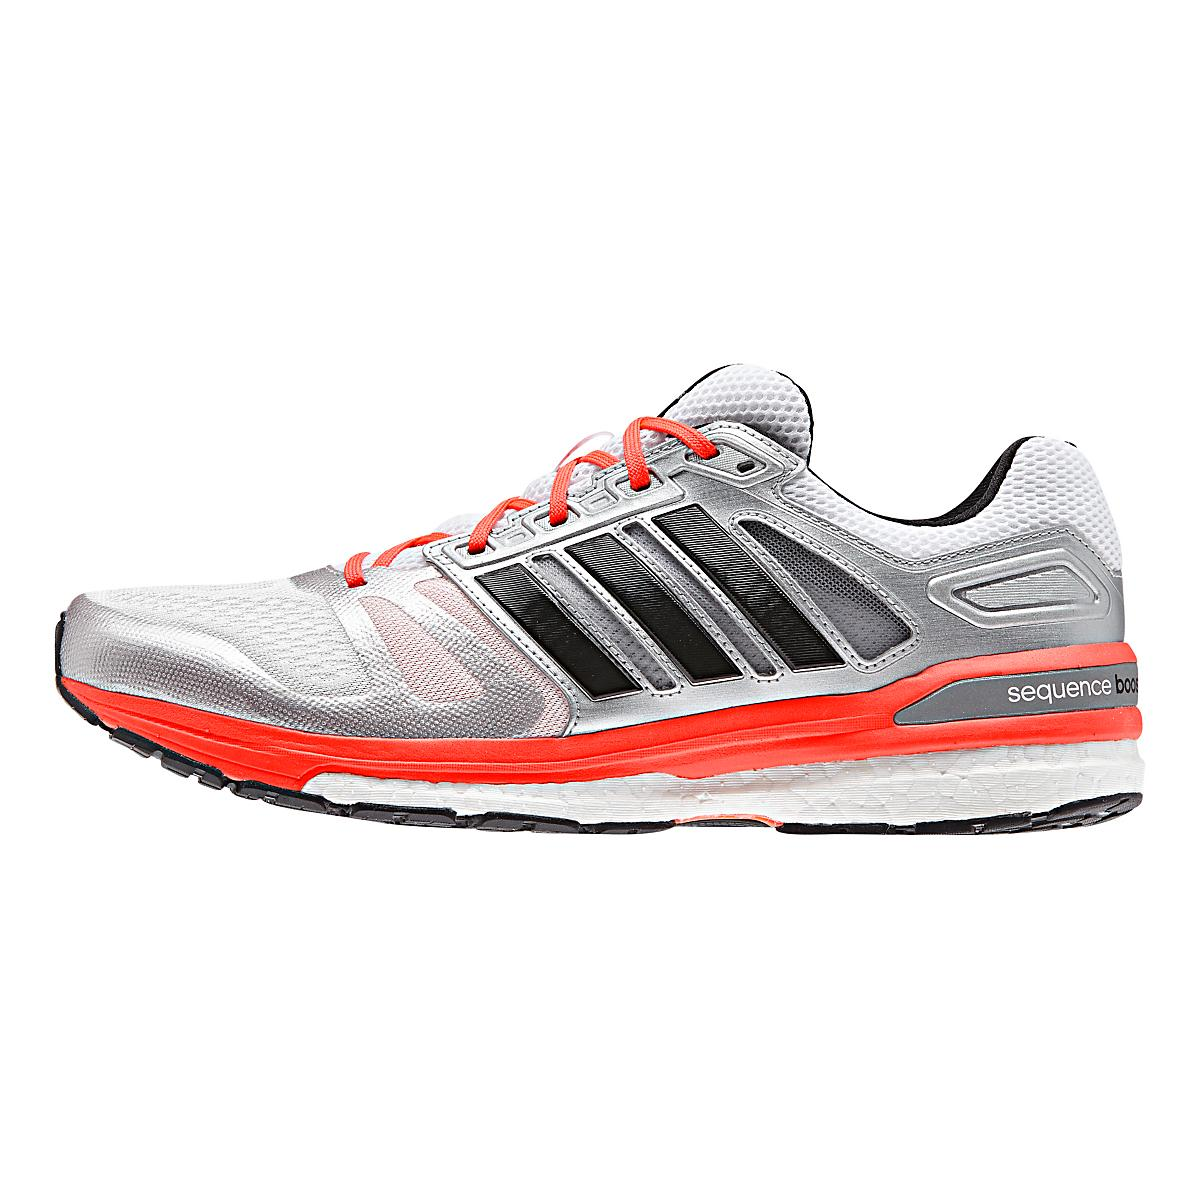 4b297c075ff63 Mens adidas Supernova Sequence 7 Boost Running Shoe at Road Runner Sports